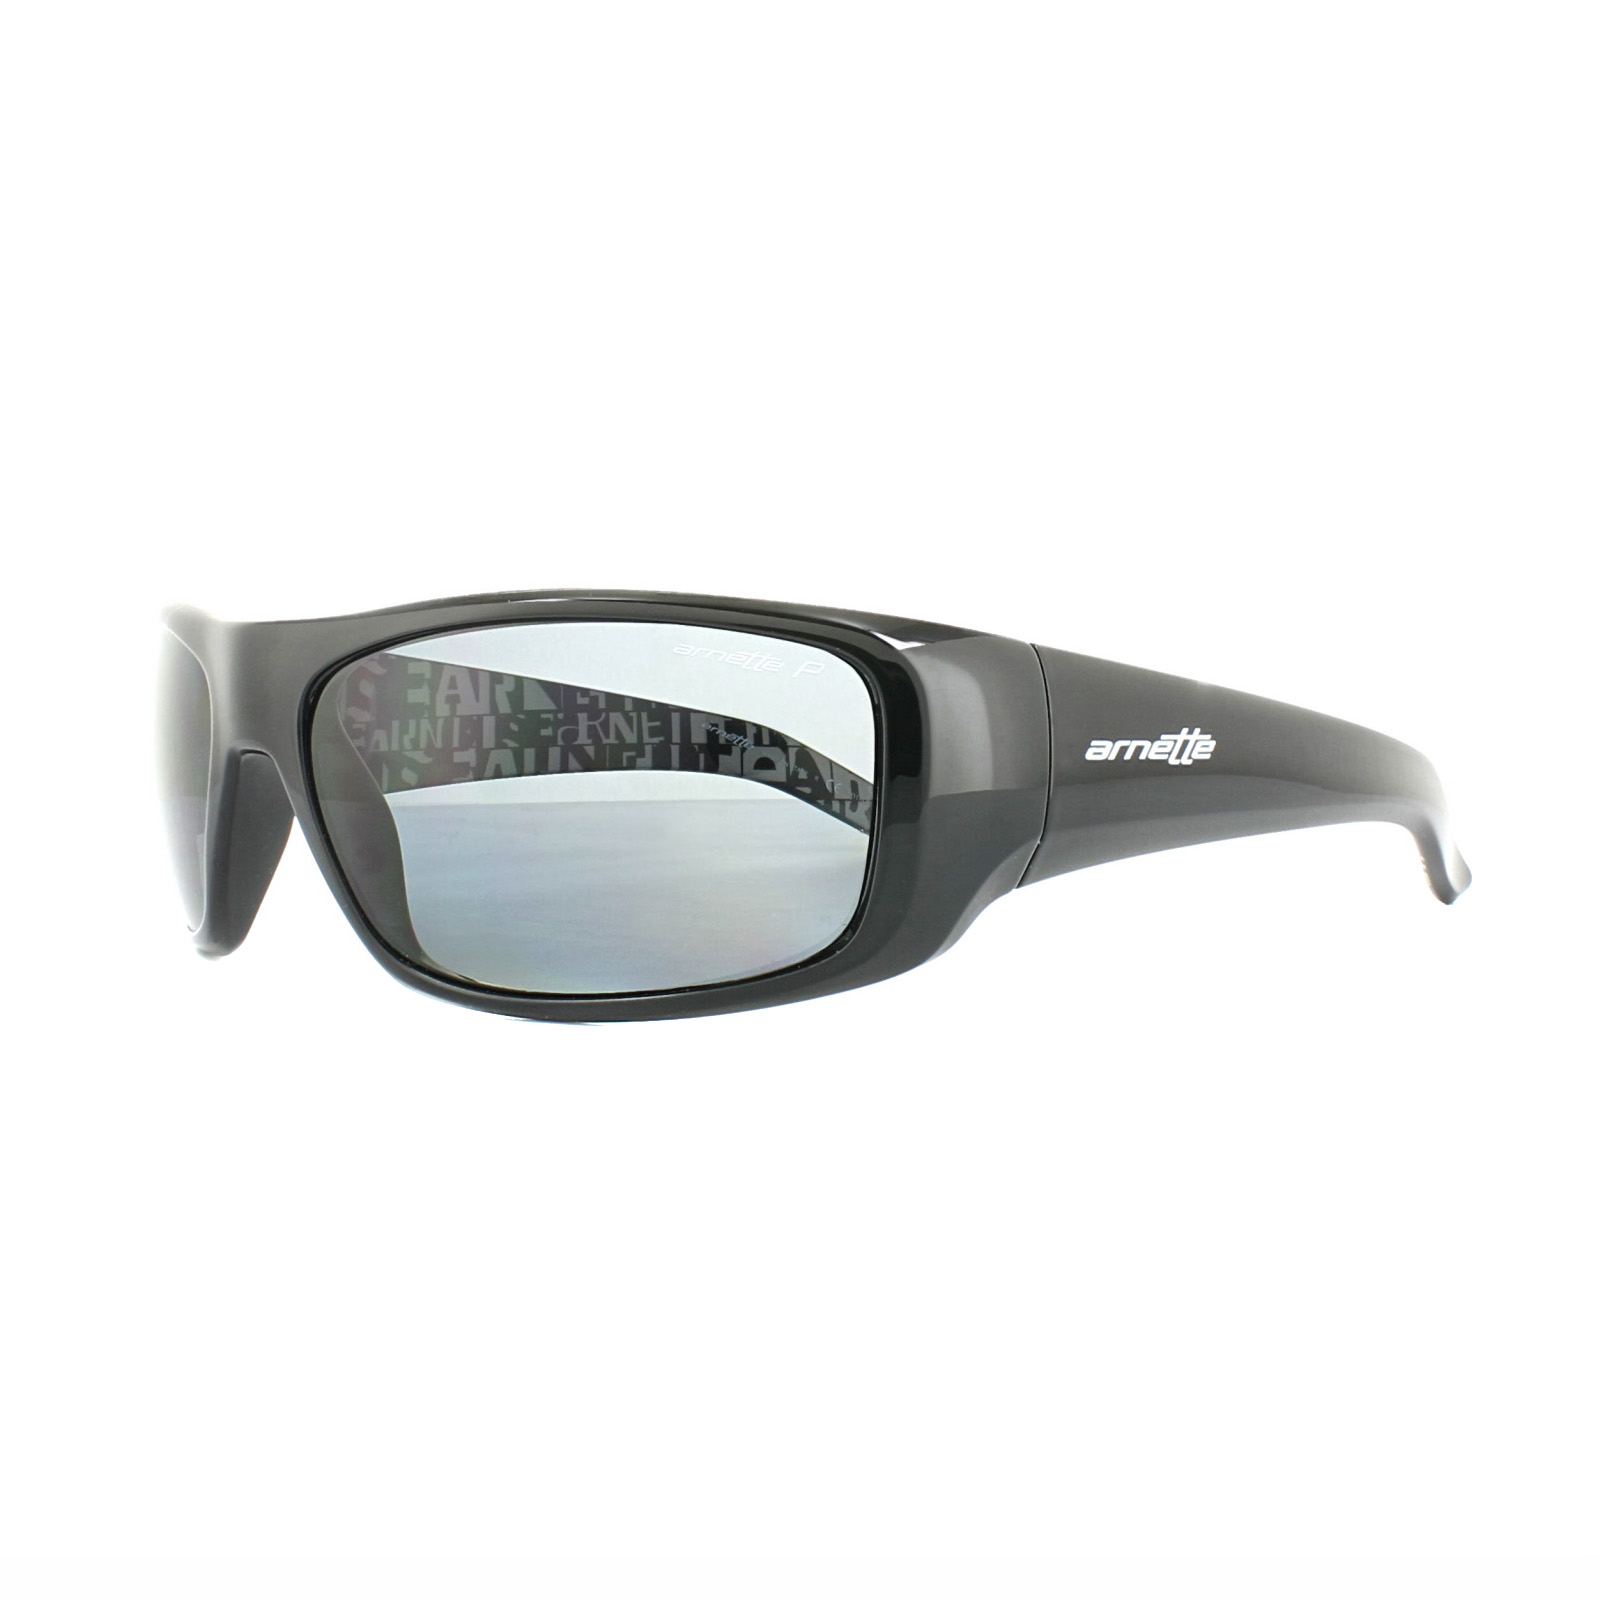 fff9dc9a60 Sentinel Arnette Sunglasses Hot Shot 4182 214981 Polished Black Graphics  Grey Polarized. Sentinel Thumbnail 2